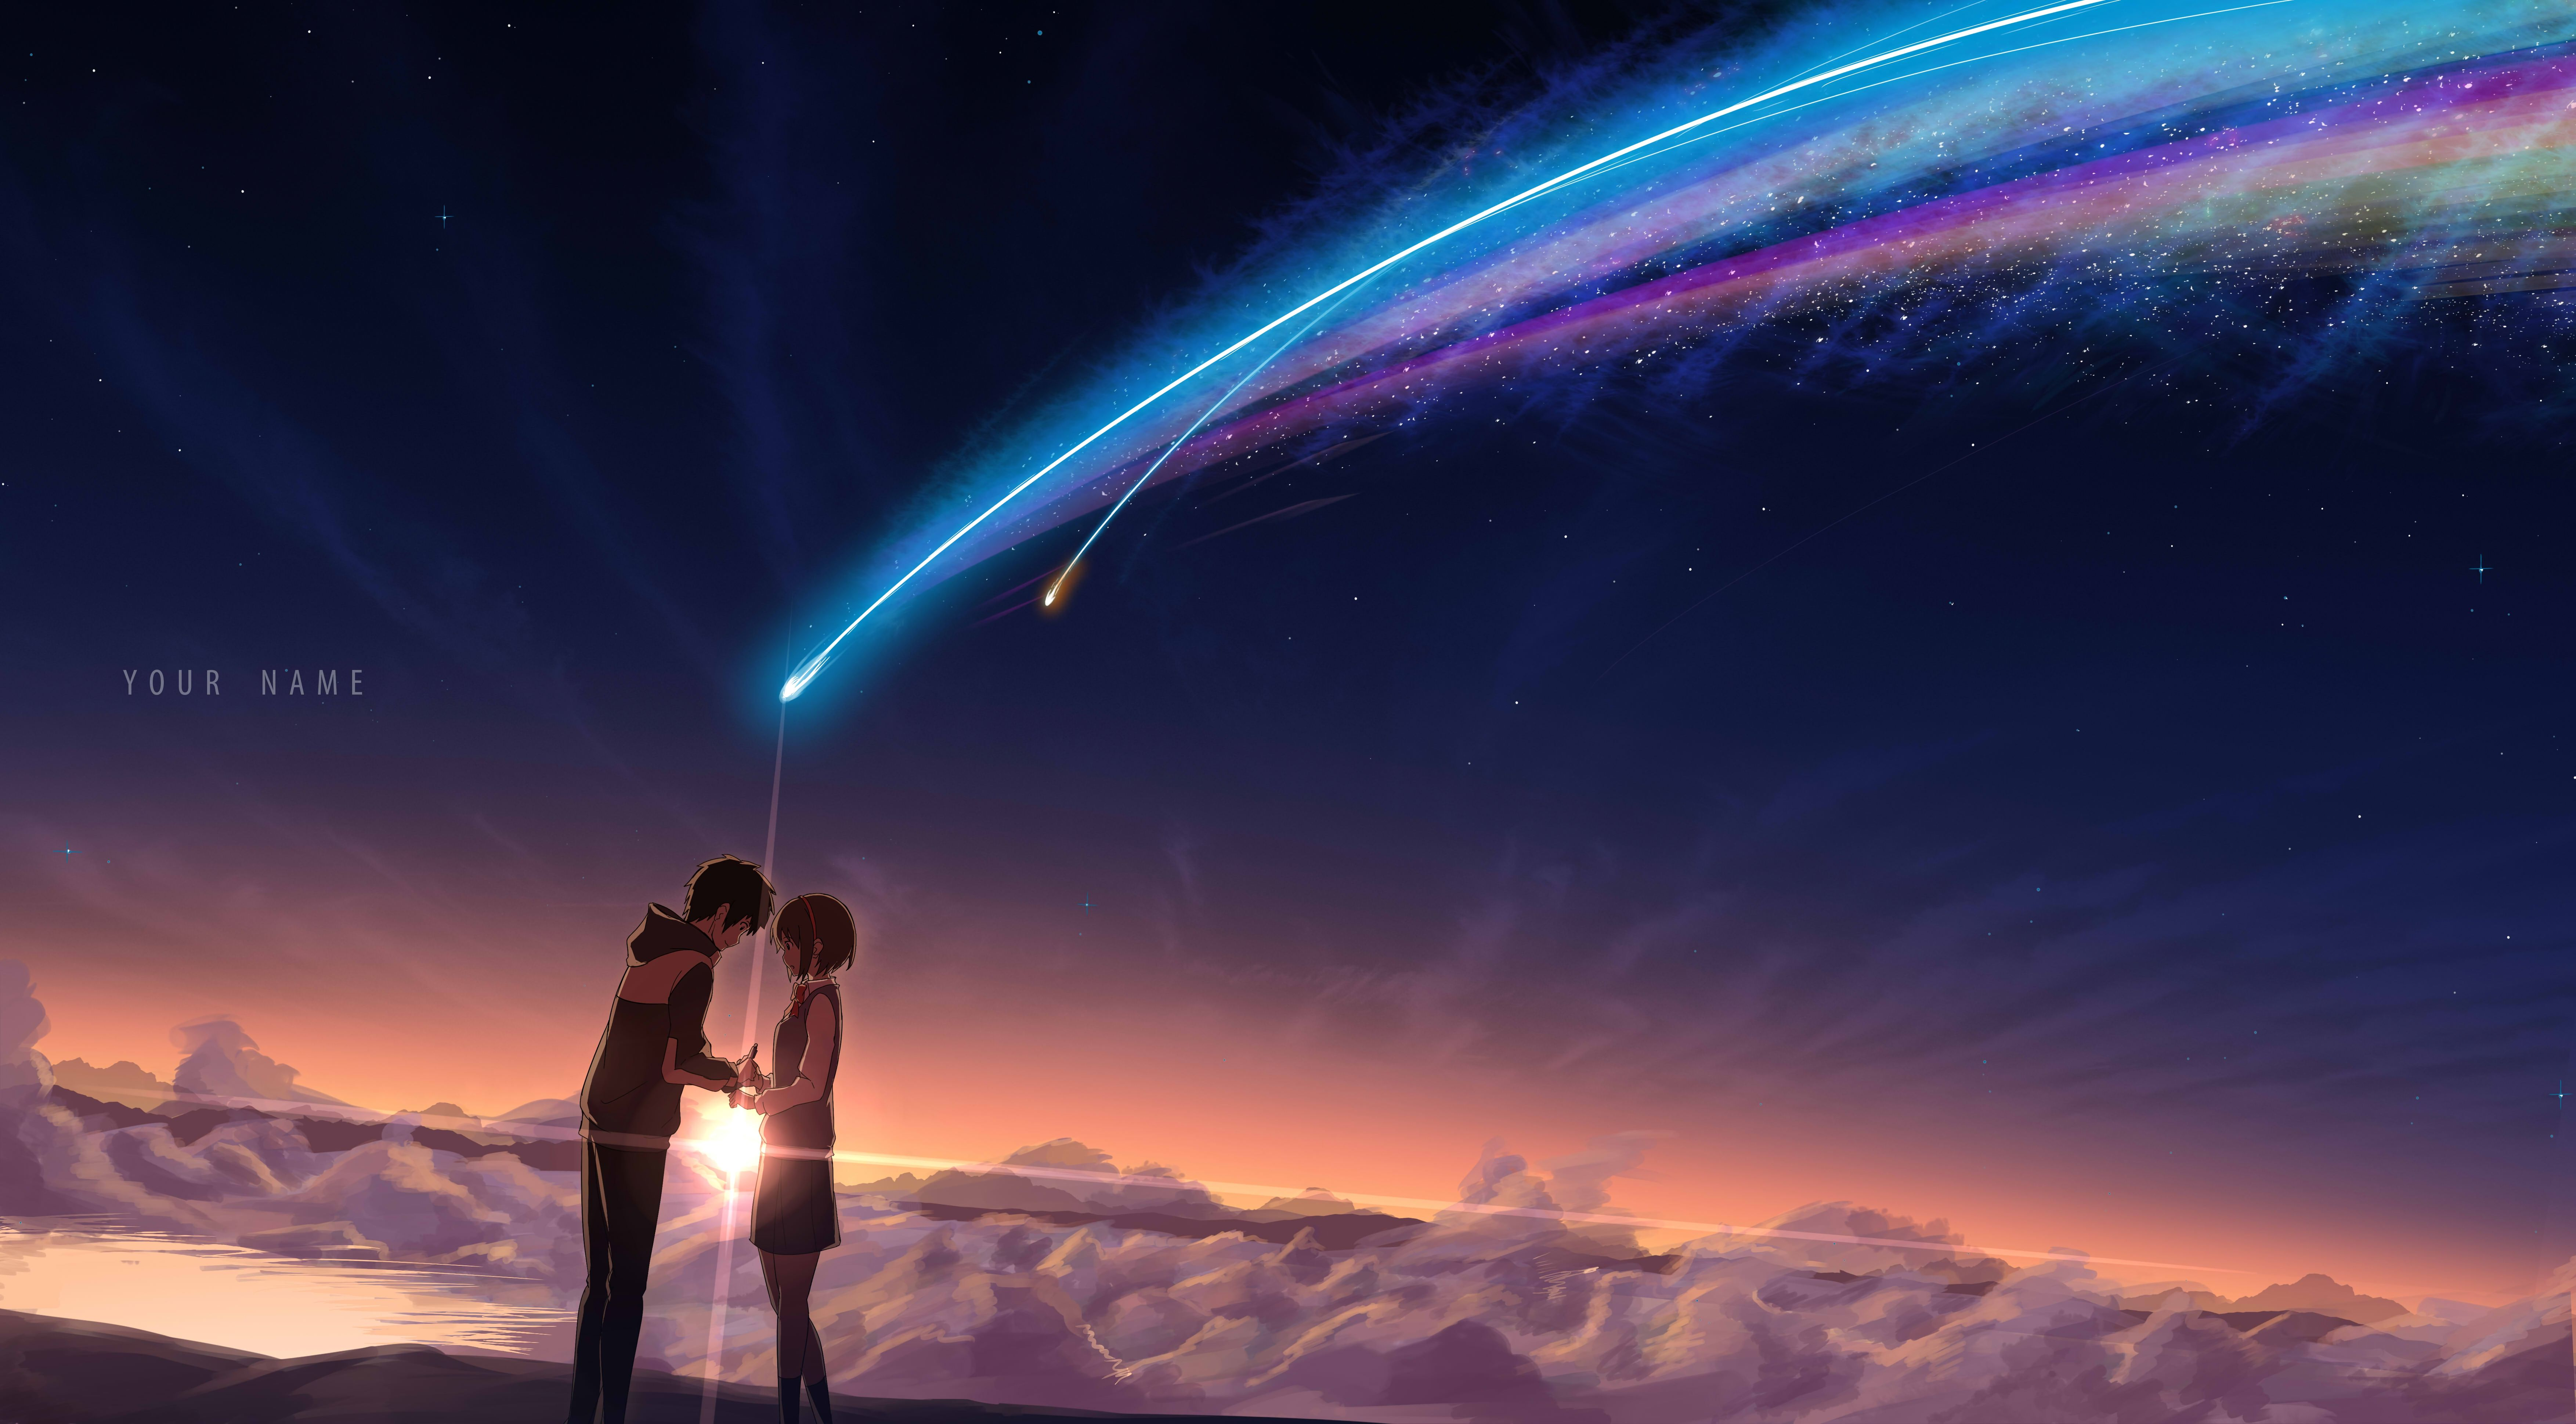 Anime Your Name Desktop Wallpapers Top Free Anime Your